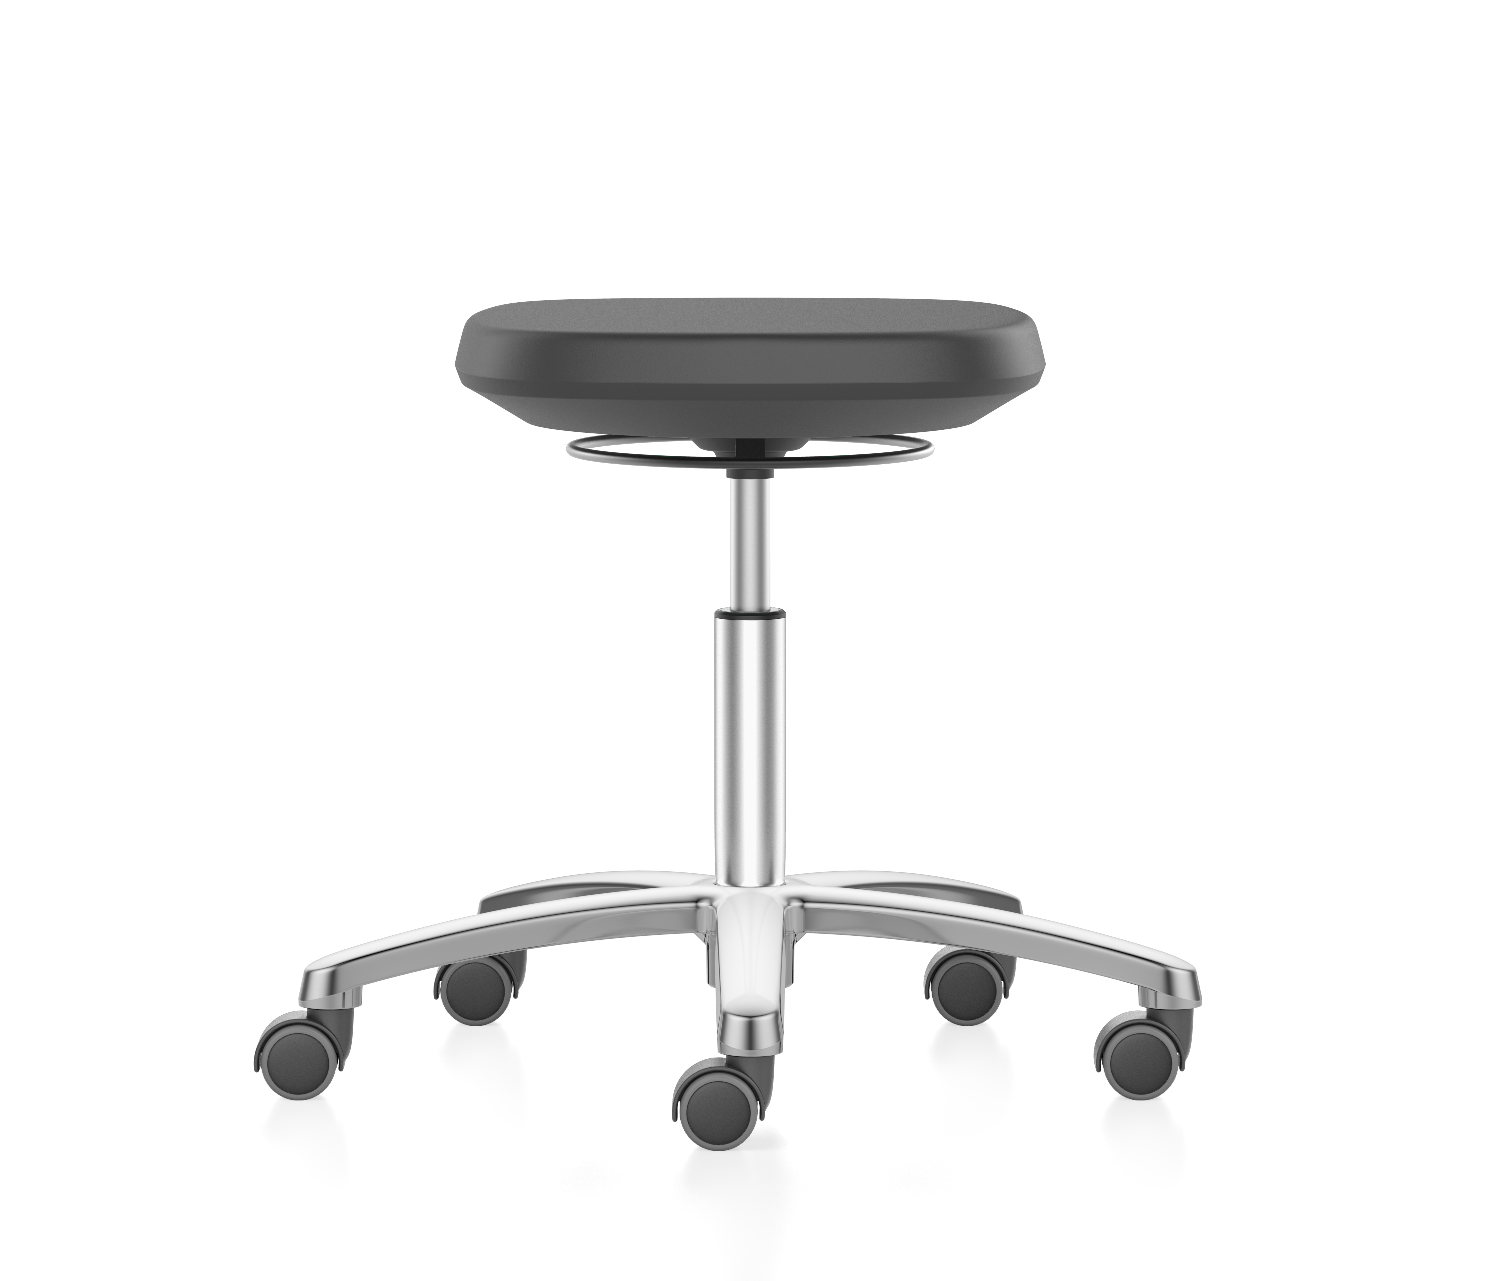 Cleanroom laboratory stool with castors, up to cleanroom class ISO 3, GMP compliant, safety class S1 to S3